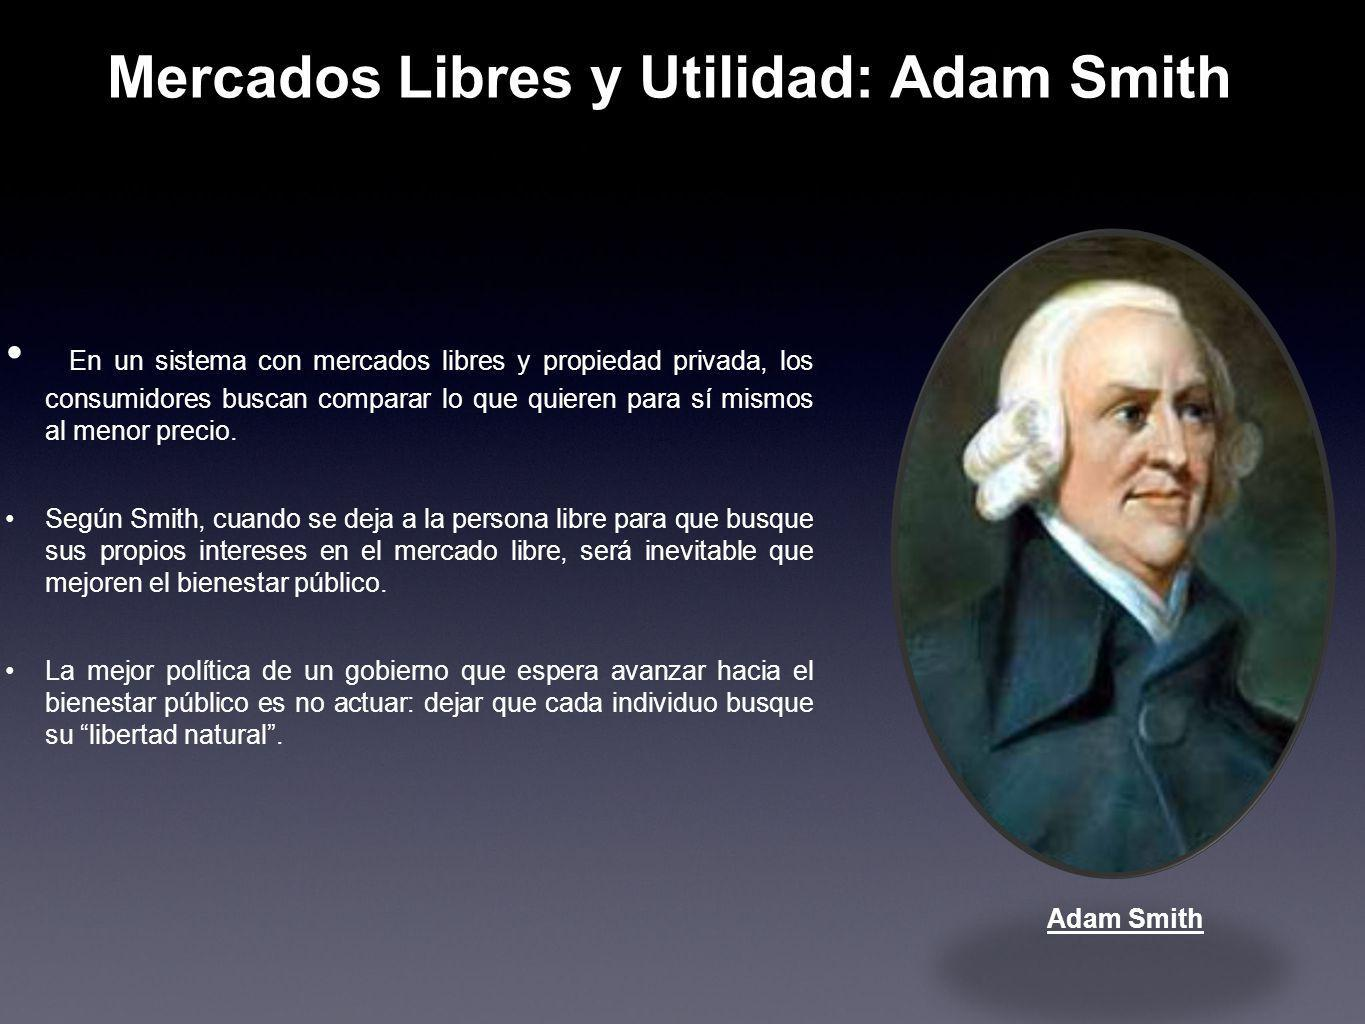 Mercados Libres y Utilidad: Adam Smith